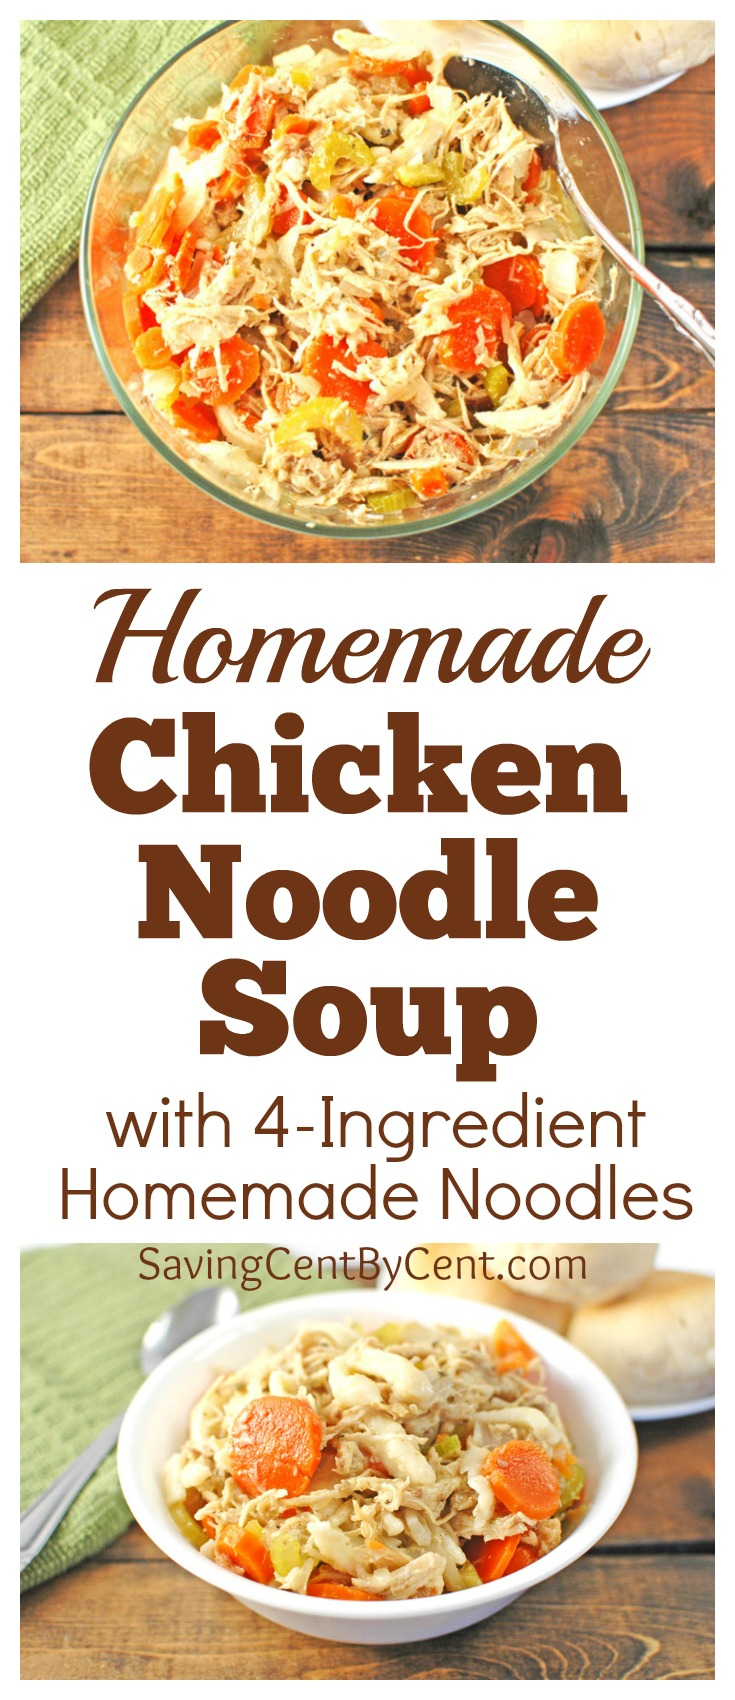 Homemade Chicken Noodle Soup with 4-Ingredient Homemade Noodles